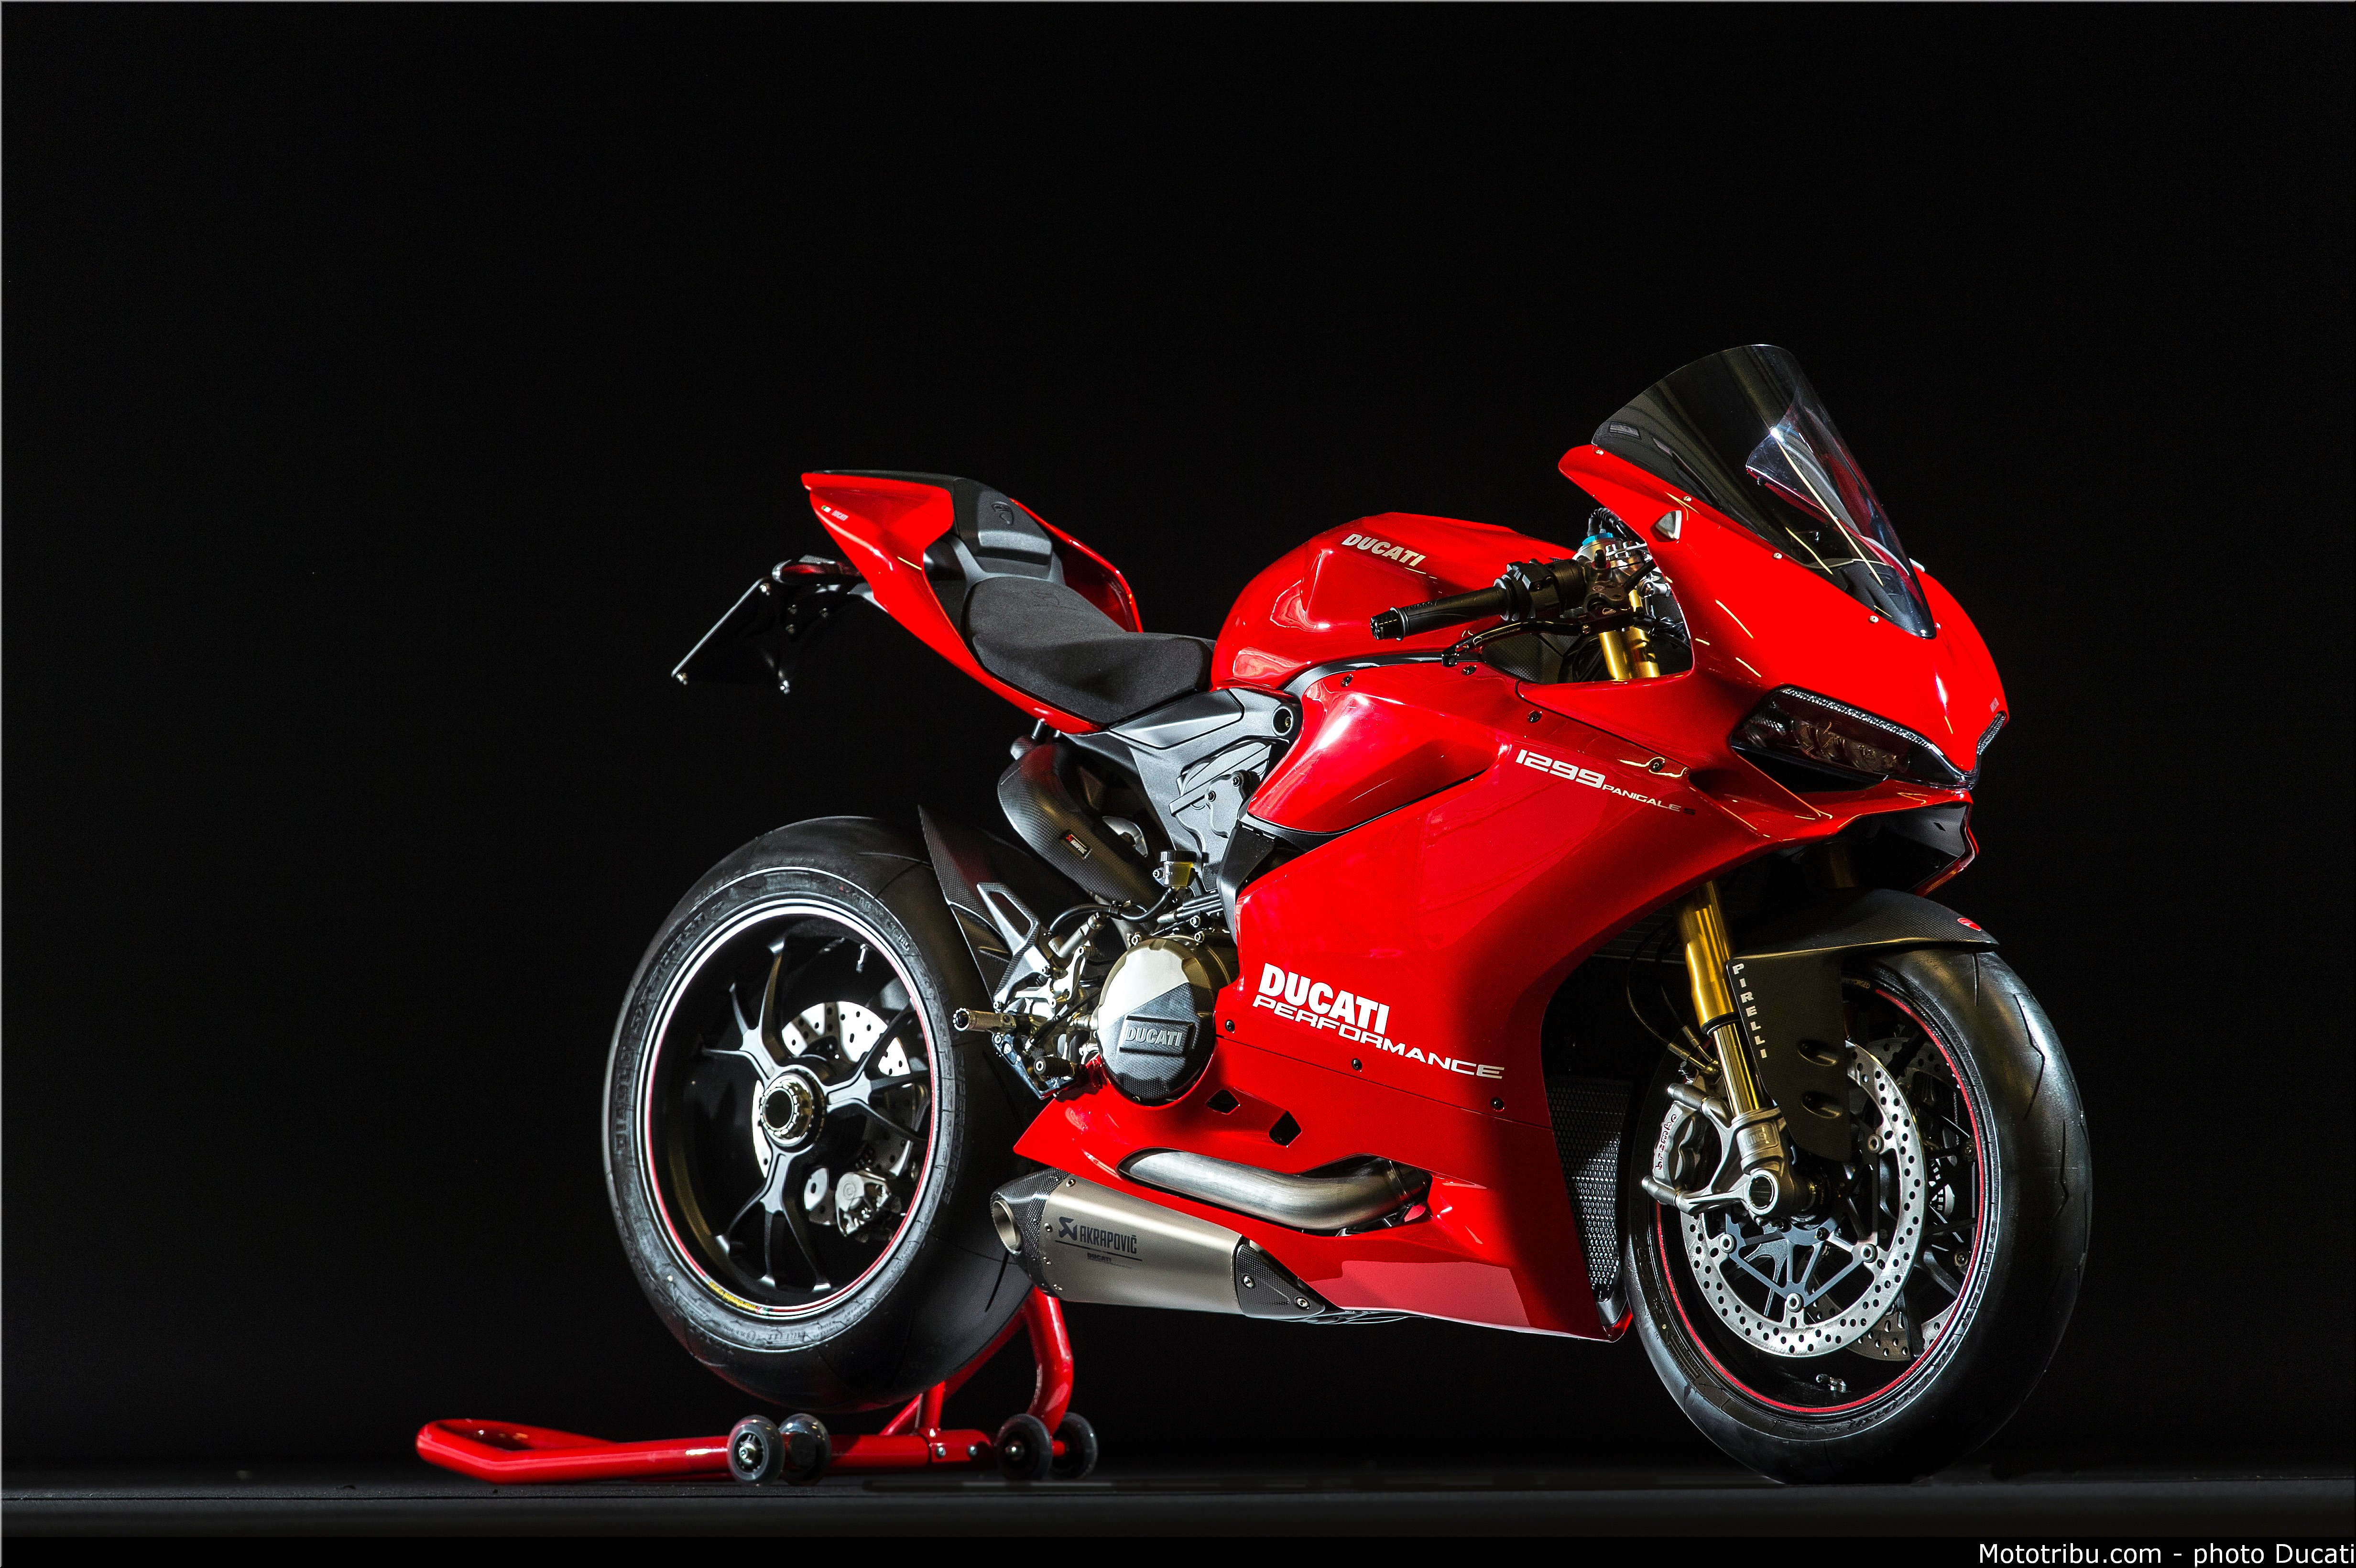 Ducati Panigale 1299 S [4,928 X 3,280] [OS] : MotorcyclePorn